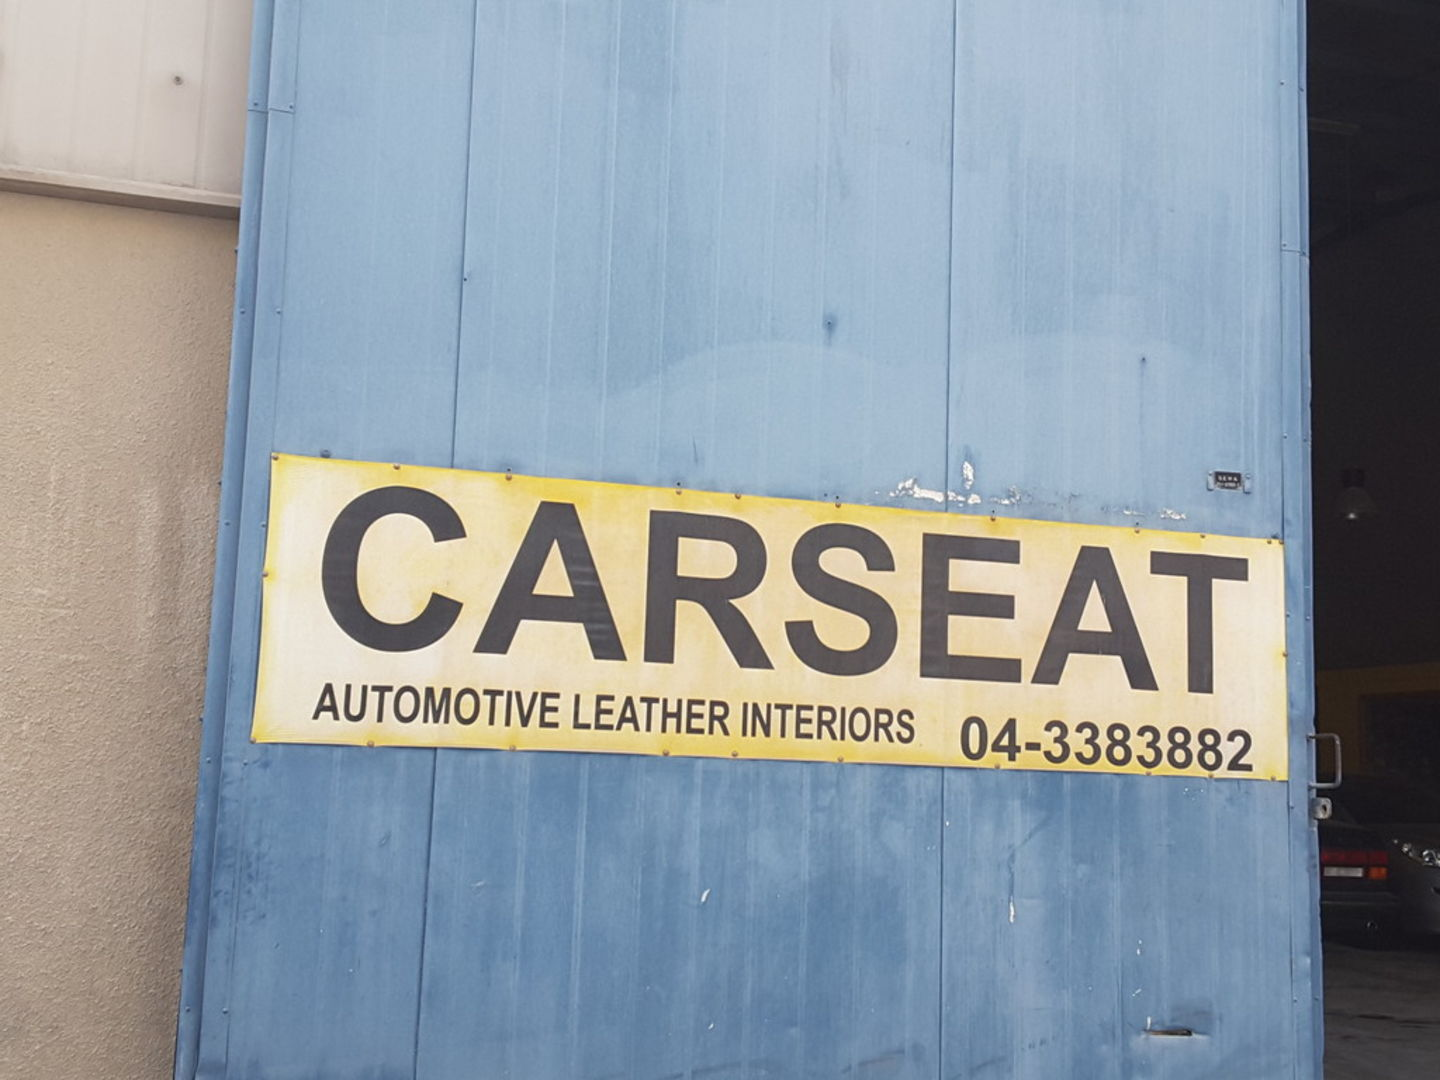 Walif-business-carseat-automotive-leather-interiors